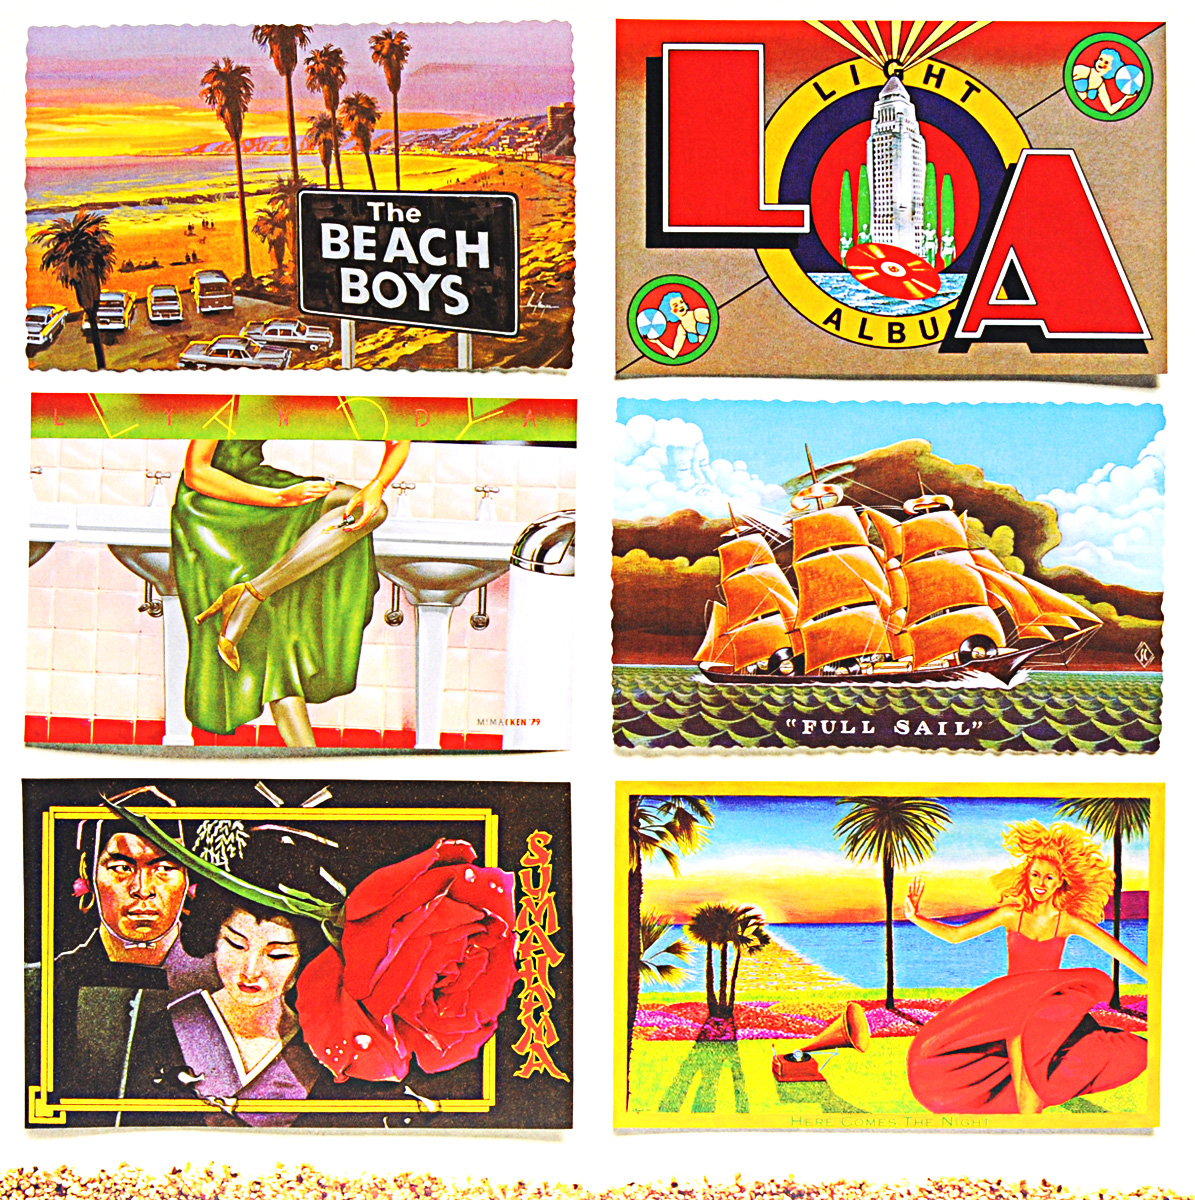 The Beach Boys The Beach Boys. L. A. Light Album (LP) long casting fishing reel wheels 7 1 ball bearing for ocean beach